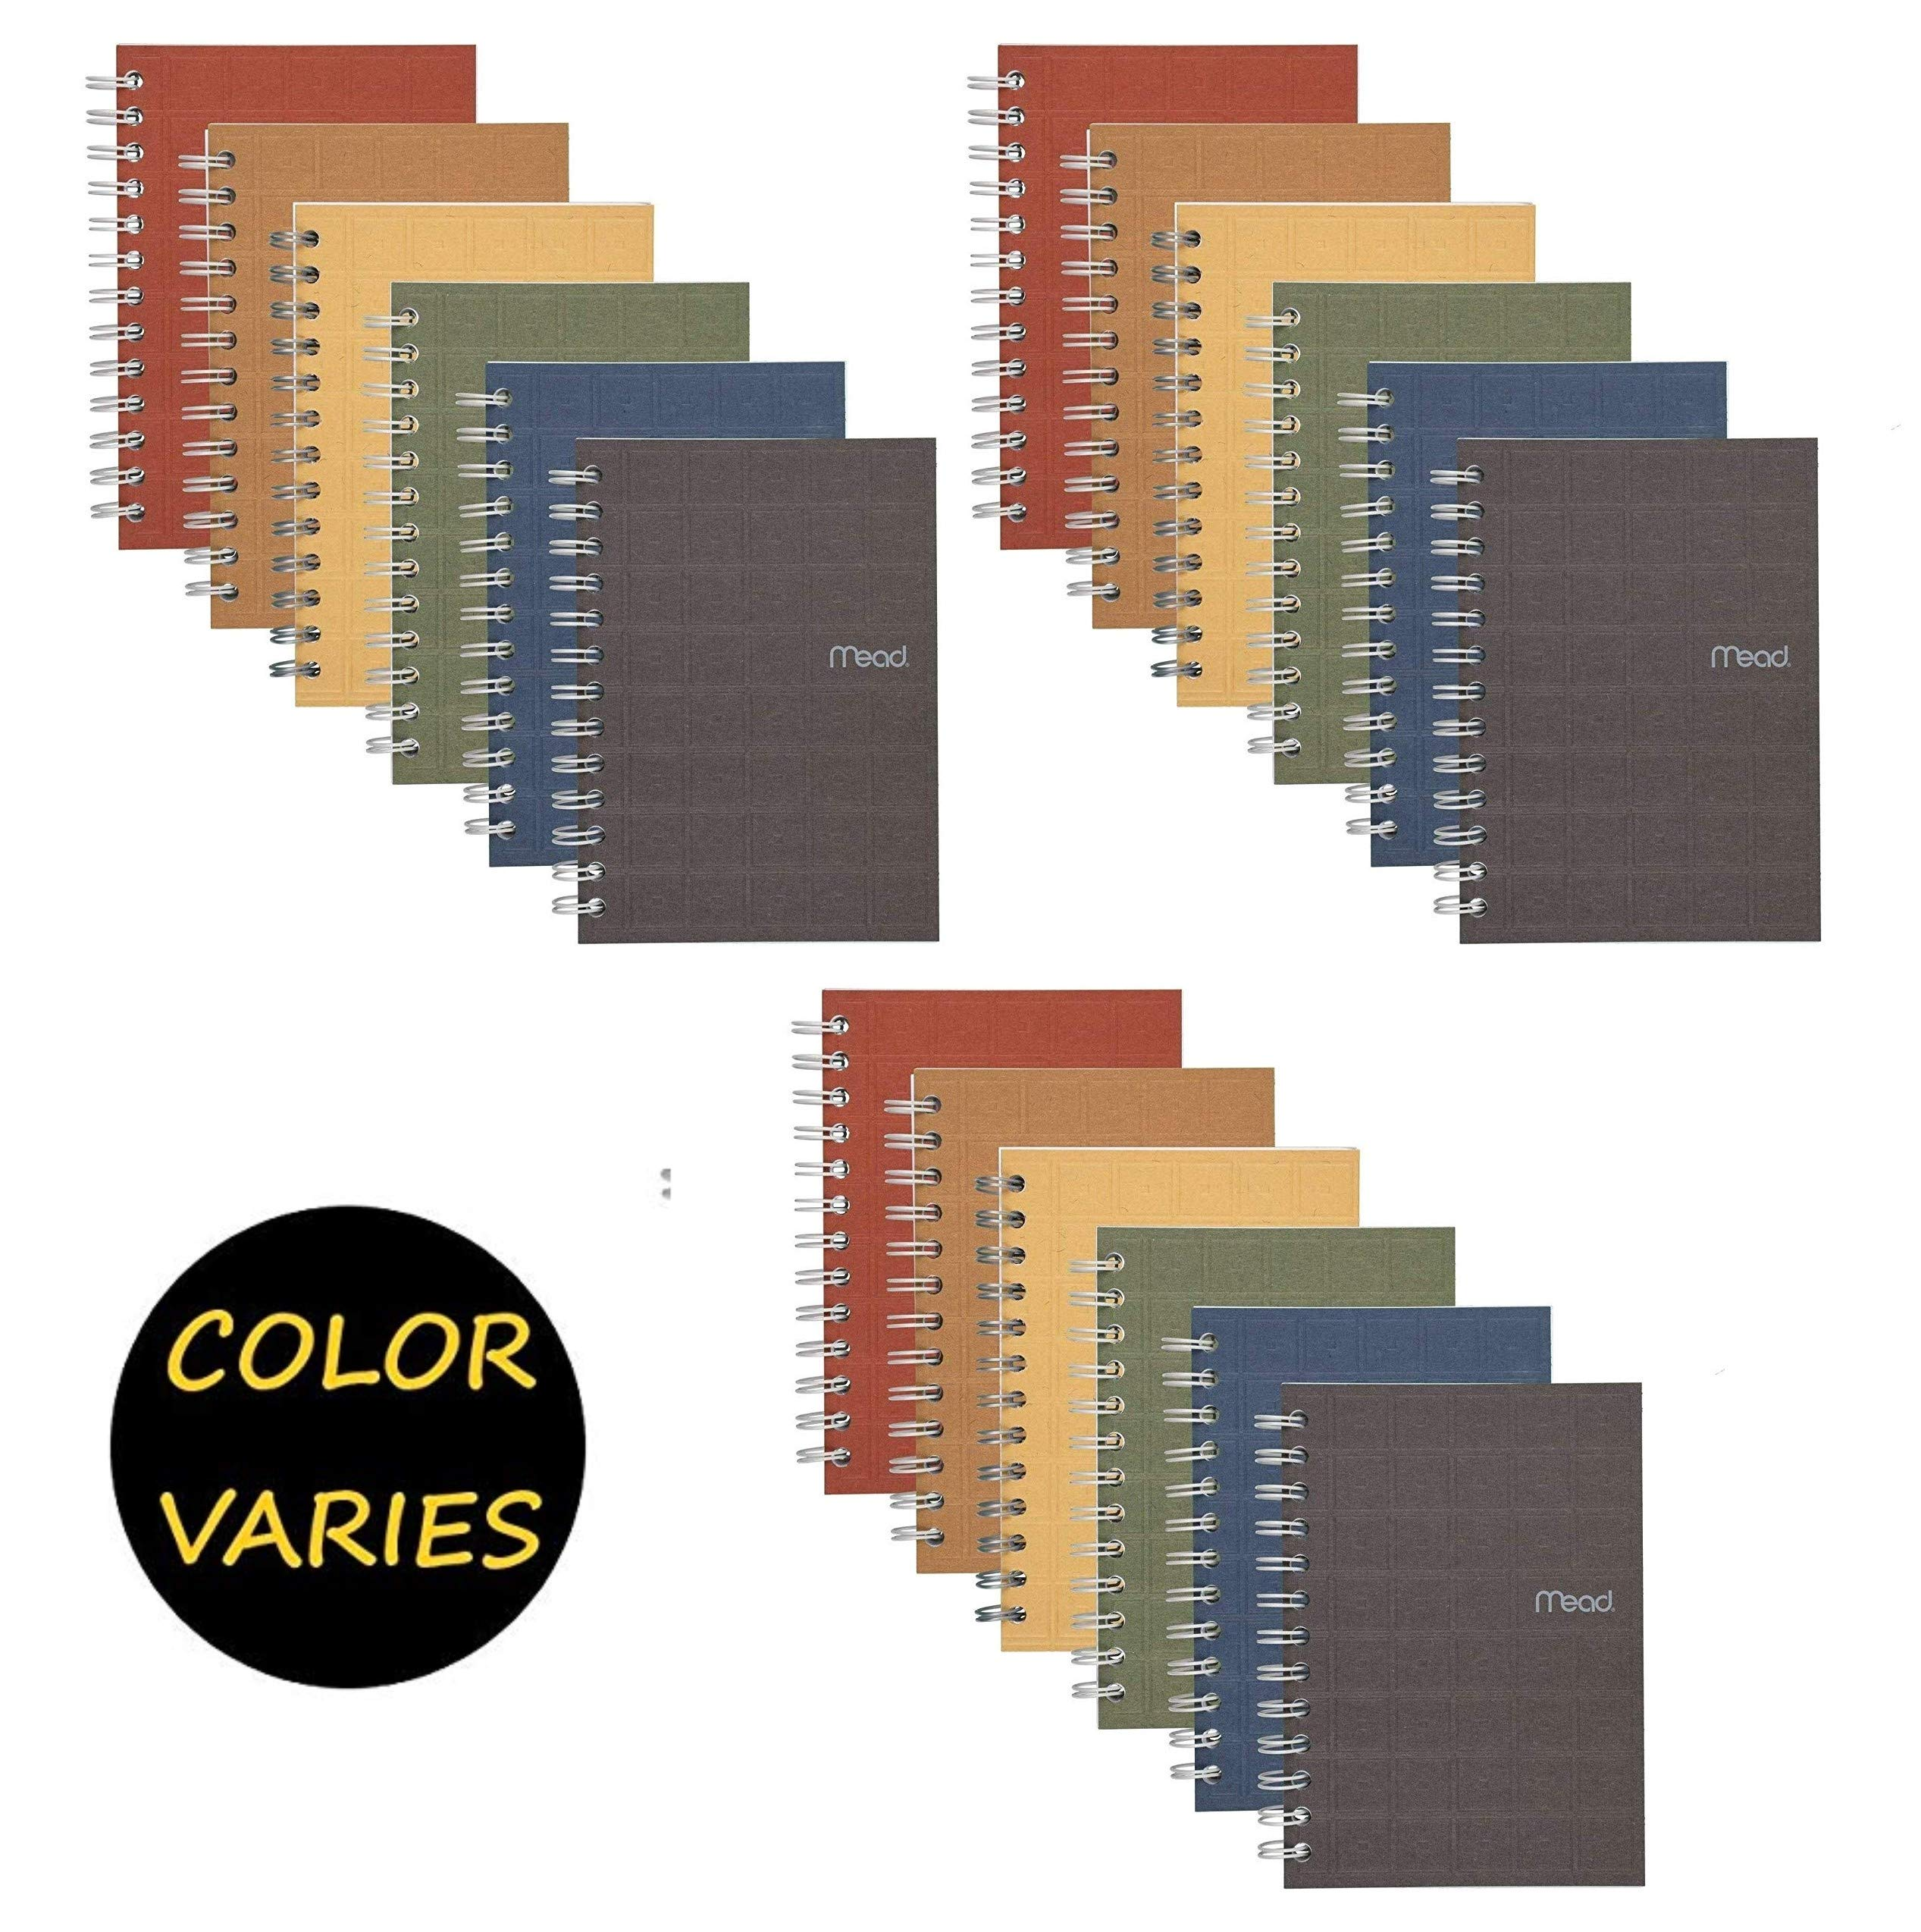 Mead Spiral Notebook, College Ruled Paper, 80 Sheets, 7'' x 5'', Recycled, Assorted Colors, 18 Pack (45186) by Mead